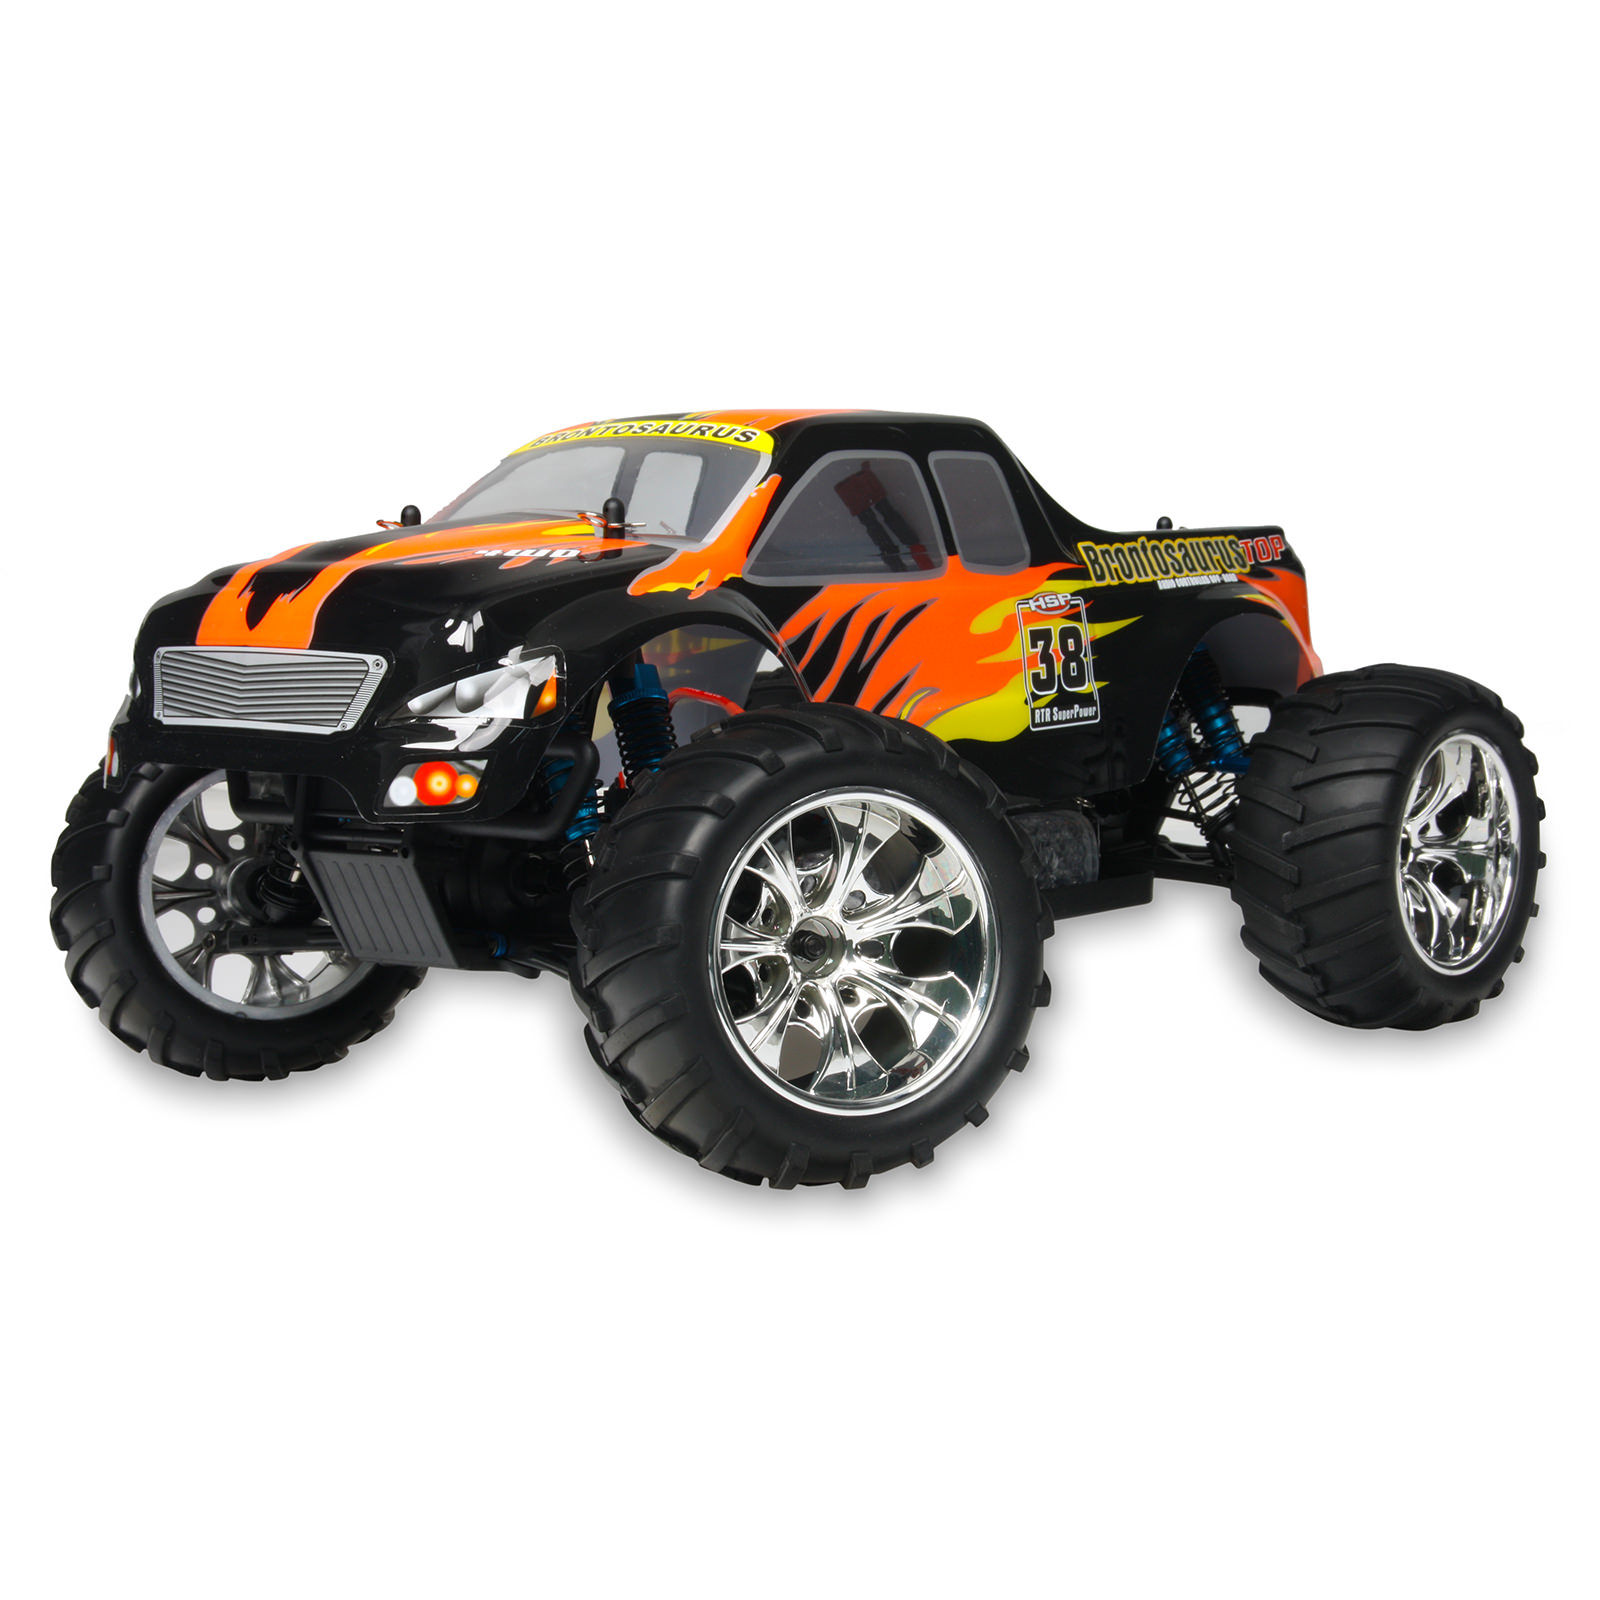 Hsp Rc Truck Nitro Gas Power Off Road Monster Truck 94188: HSP 94111TOP-10325 1/10 Black RC Monster Truck At Hobby